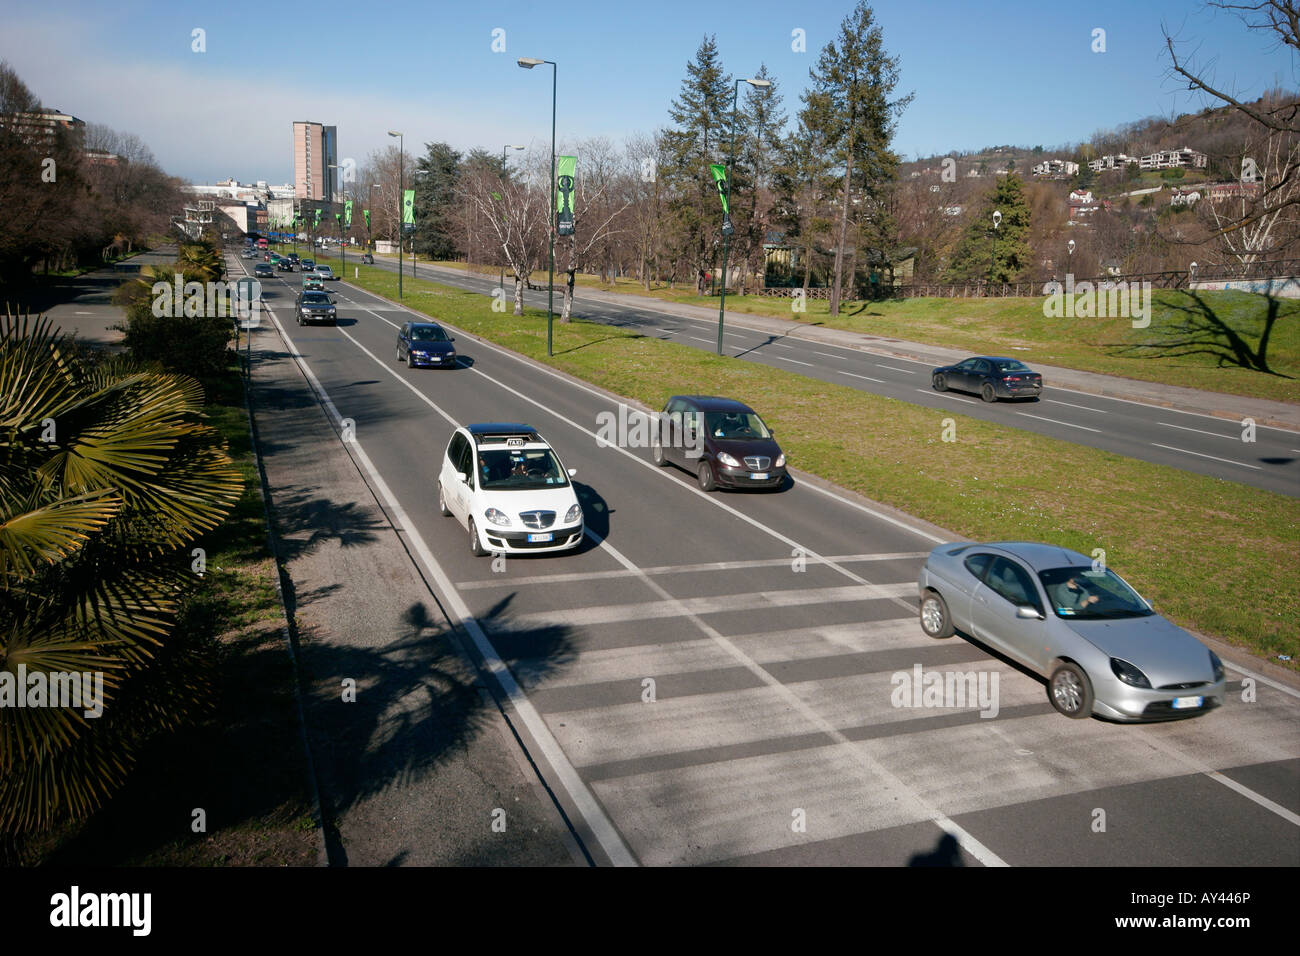 Traffic cars in Turin, Italy. - Stock Image